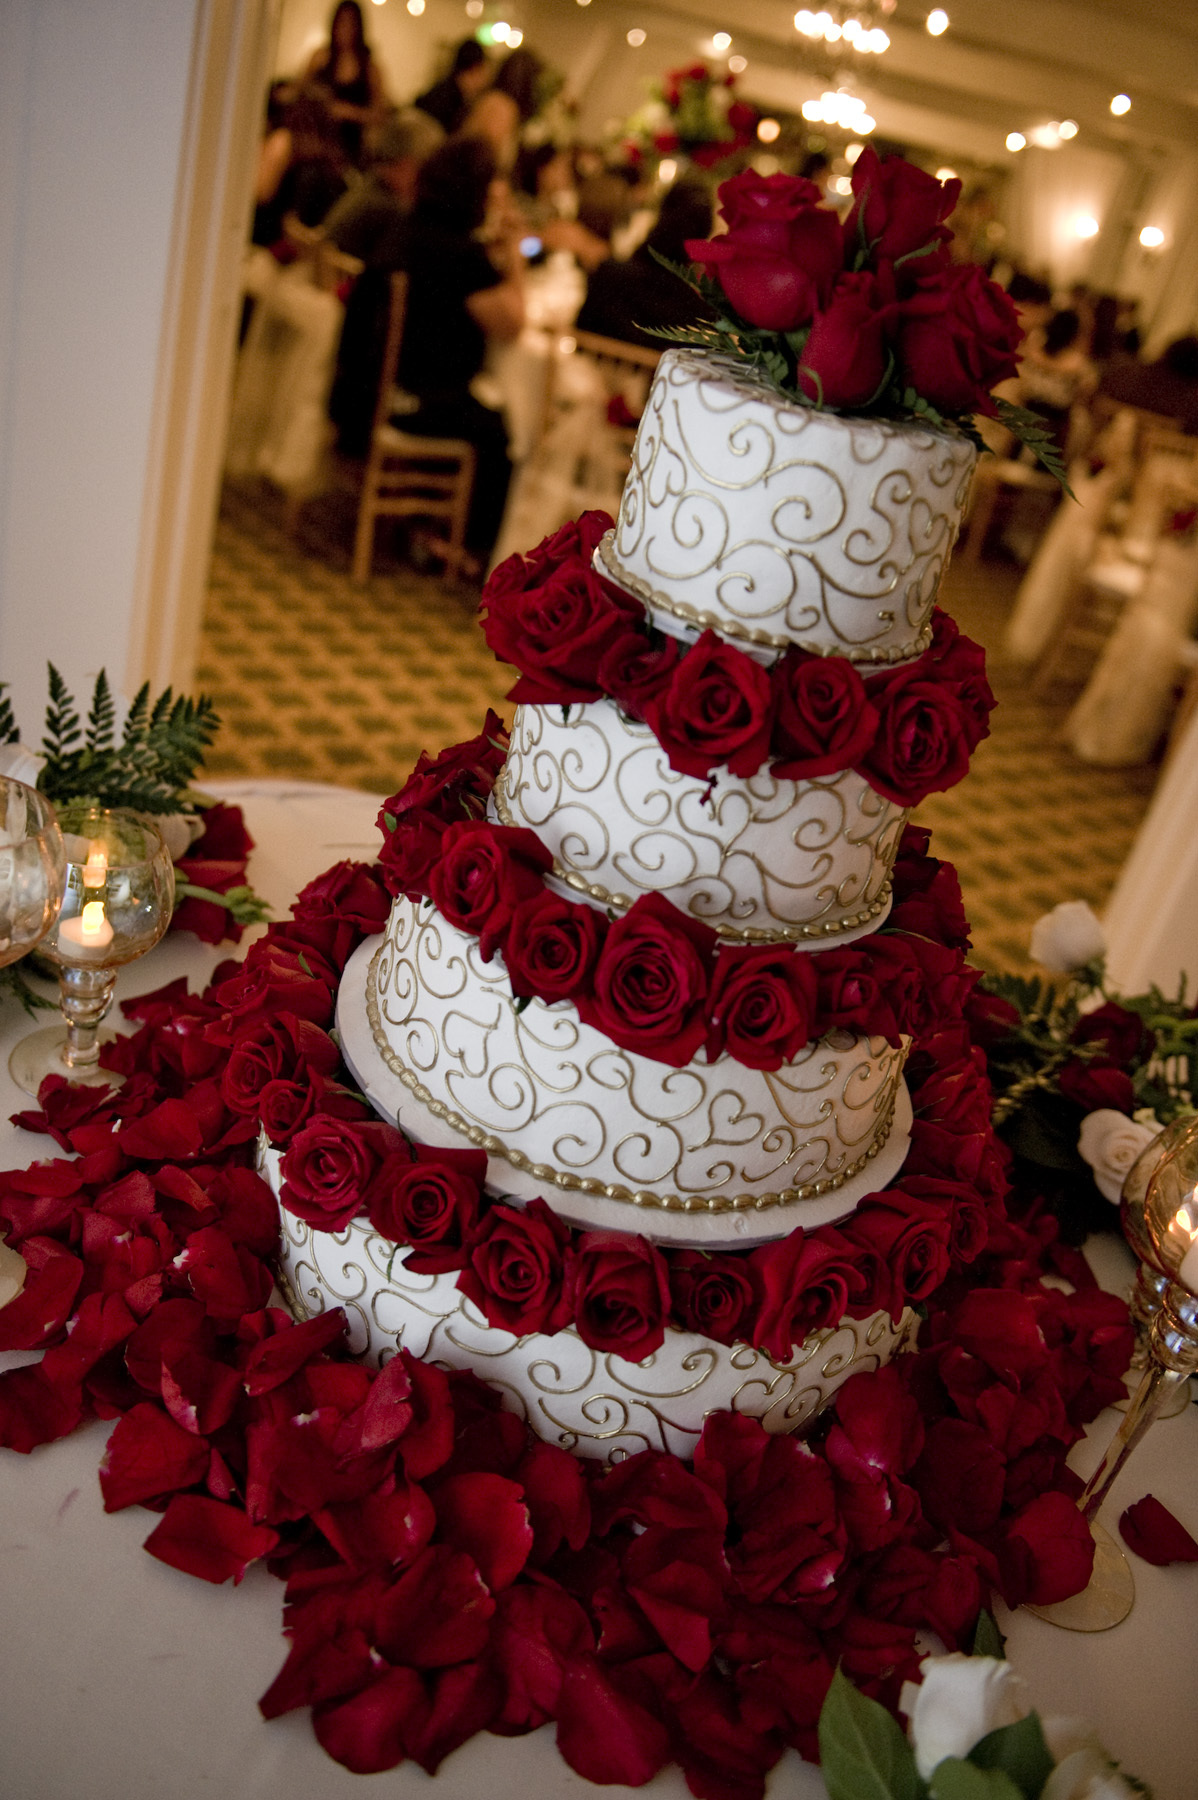 Flowers & Decor, Decor, Cakes, cake, Floral, A fairytale wedding